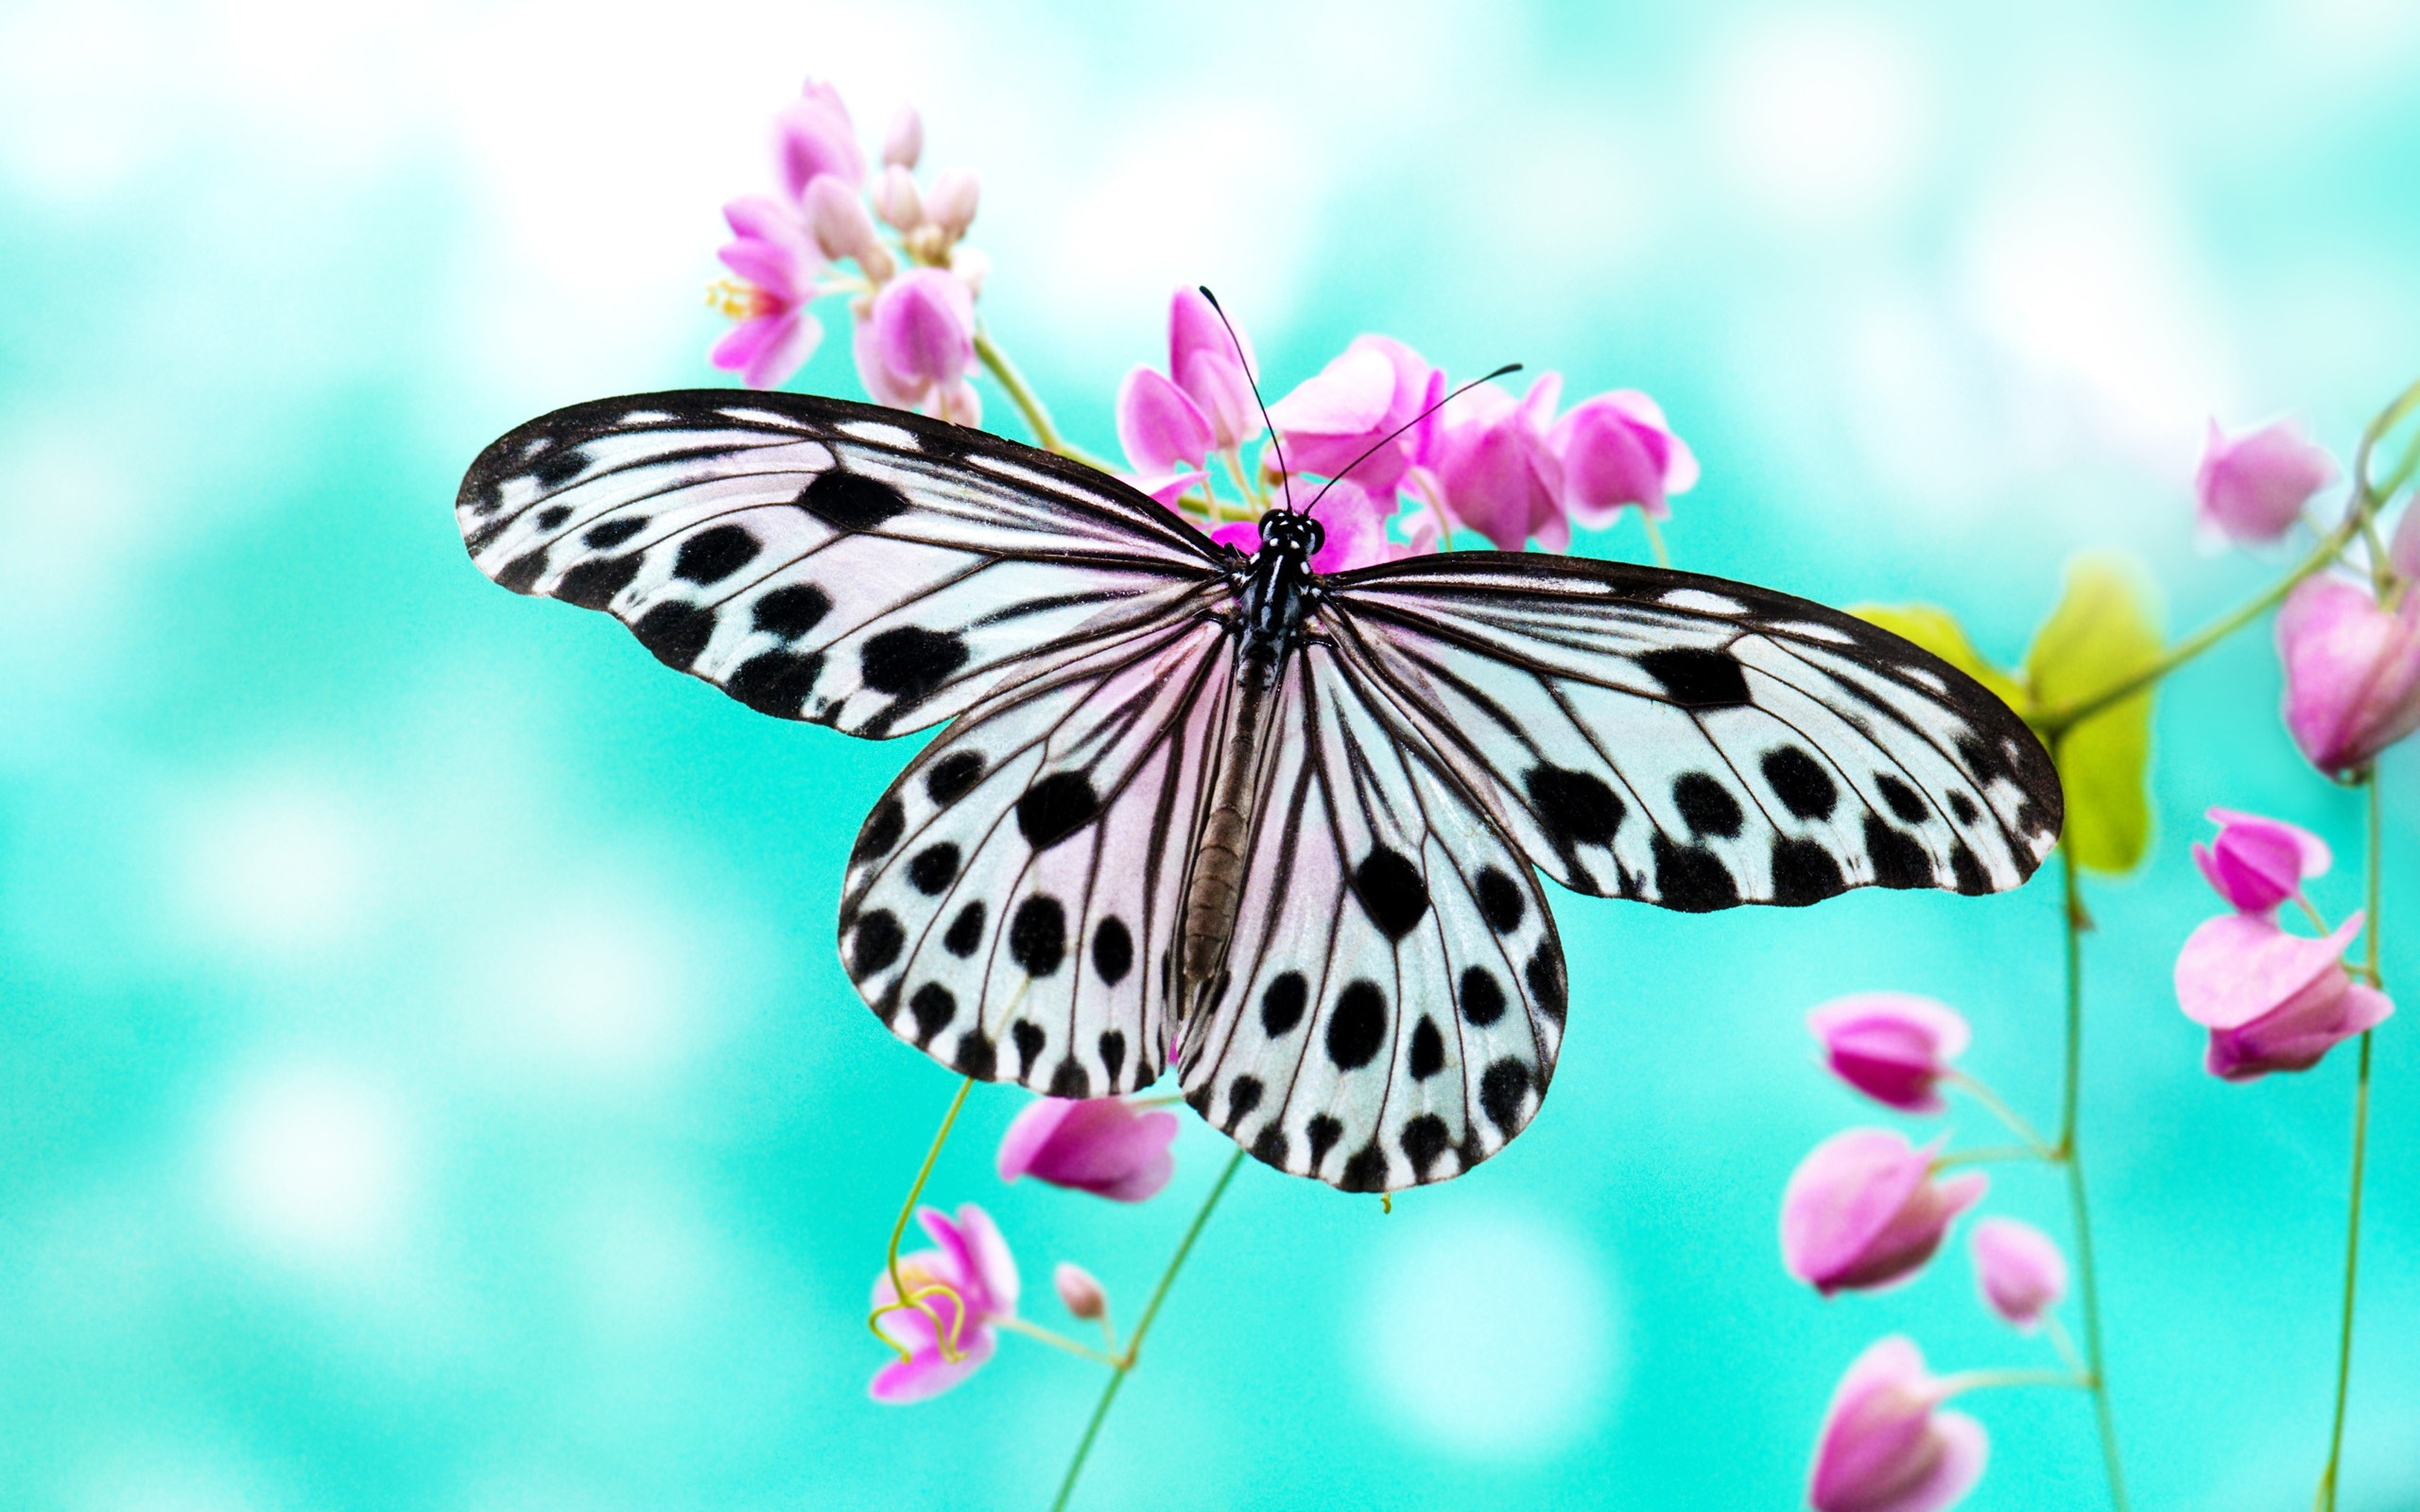 Butterfly 4k Wallpaper Download Hd And 4k Wallpaper Collections